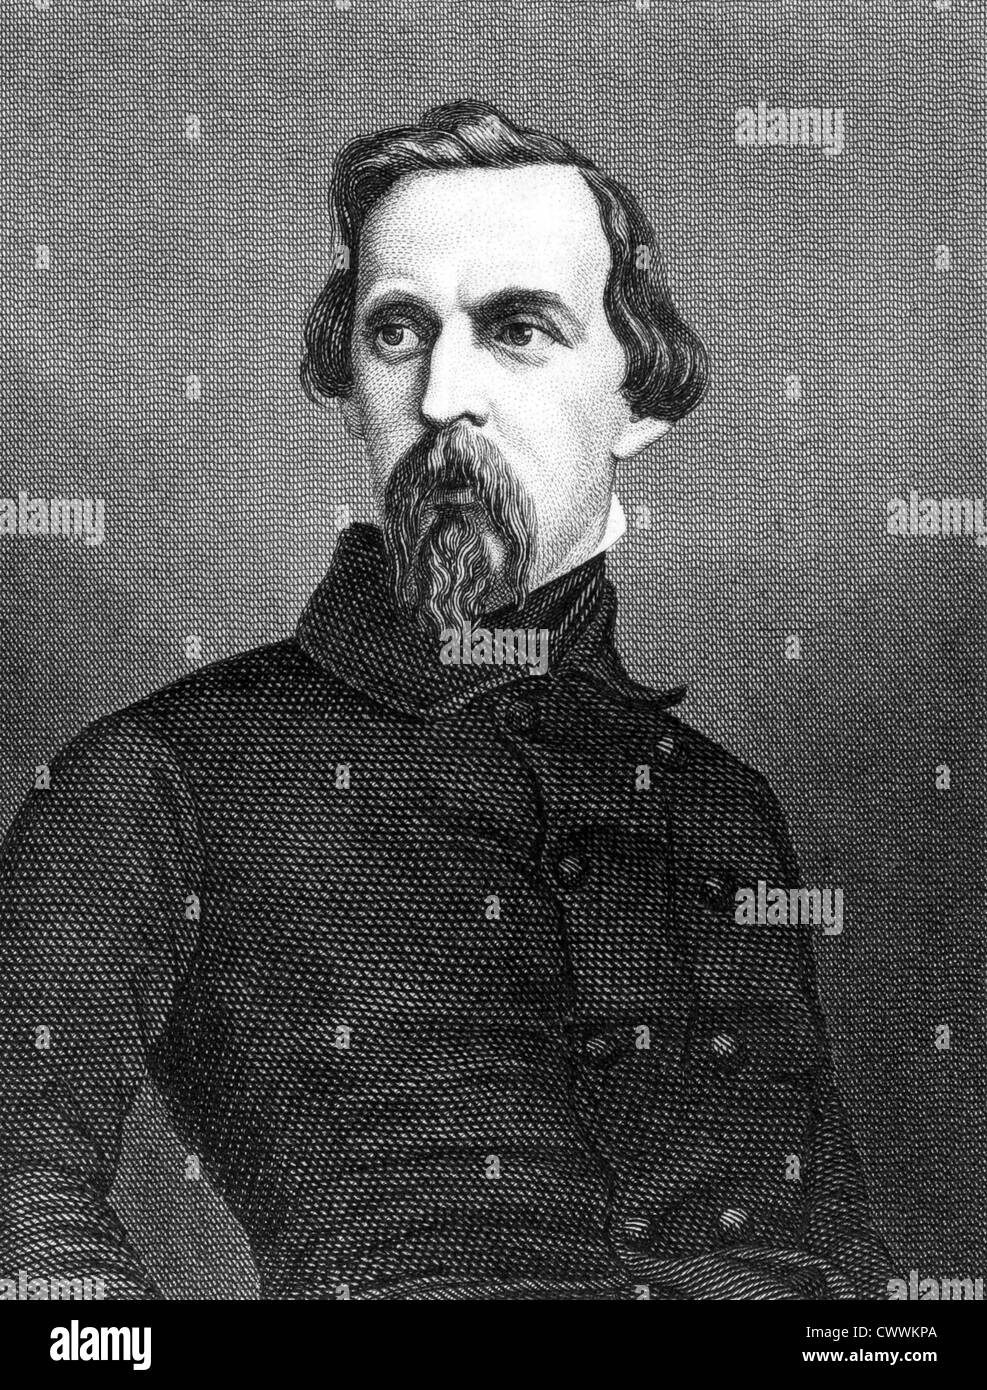 Felix Eugen Wilhelm, Prince of Hohenlohe (1818-1900) on engraving from 1859. Stock Photo